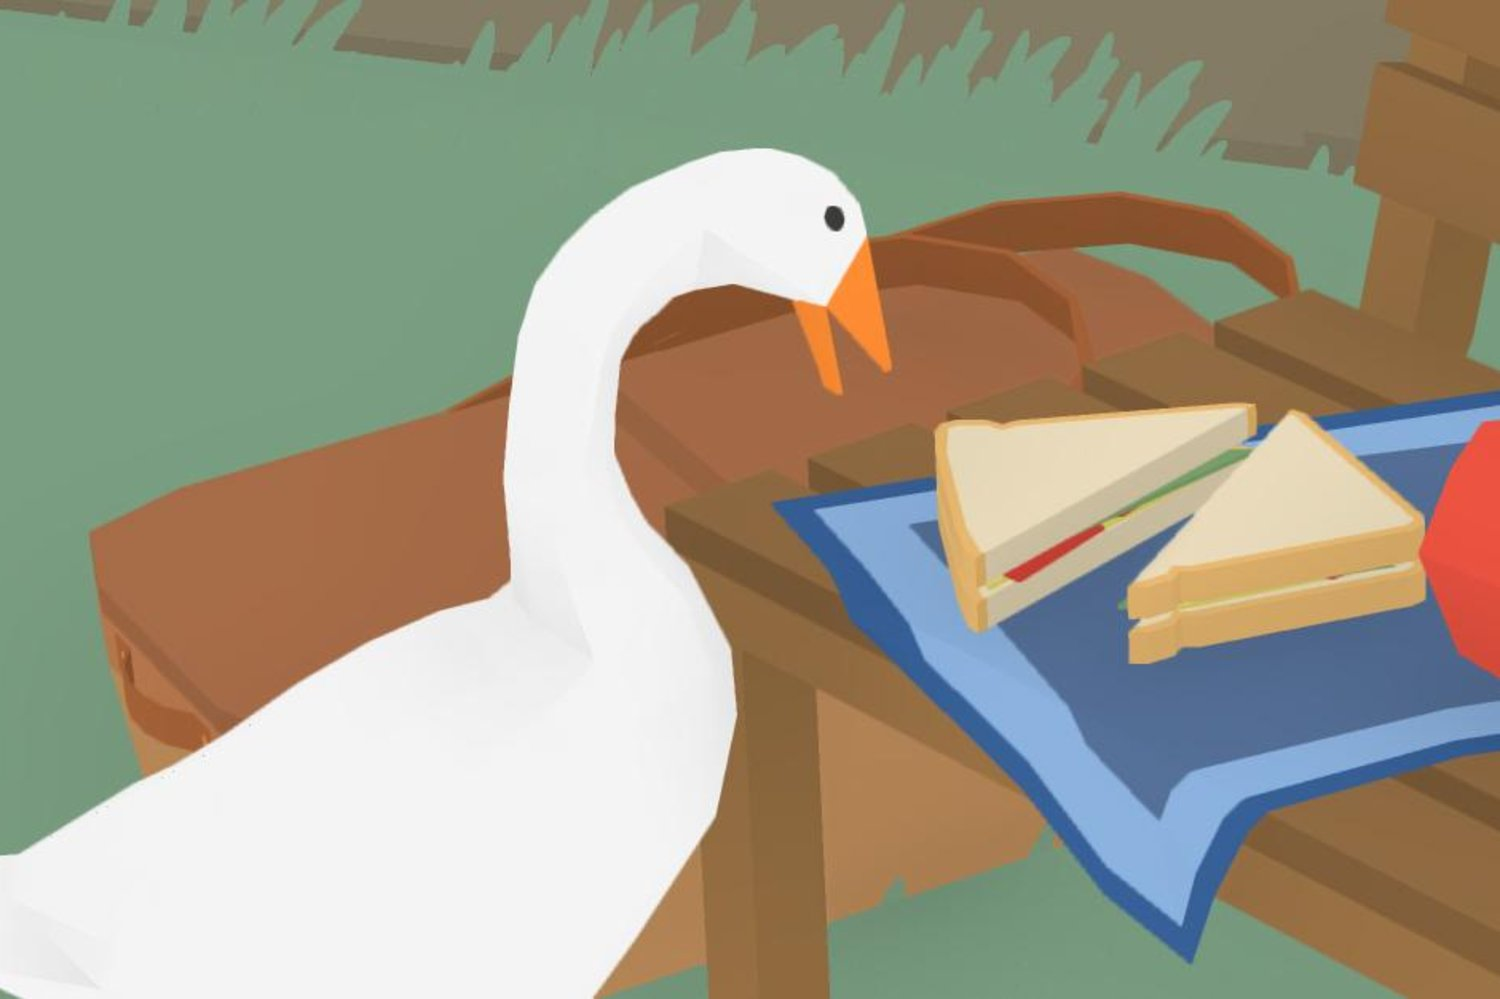 Untitled Goose Game devs explains why they chose a goose in an interview with Nintendo